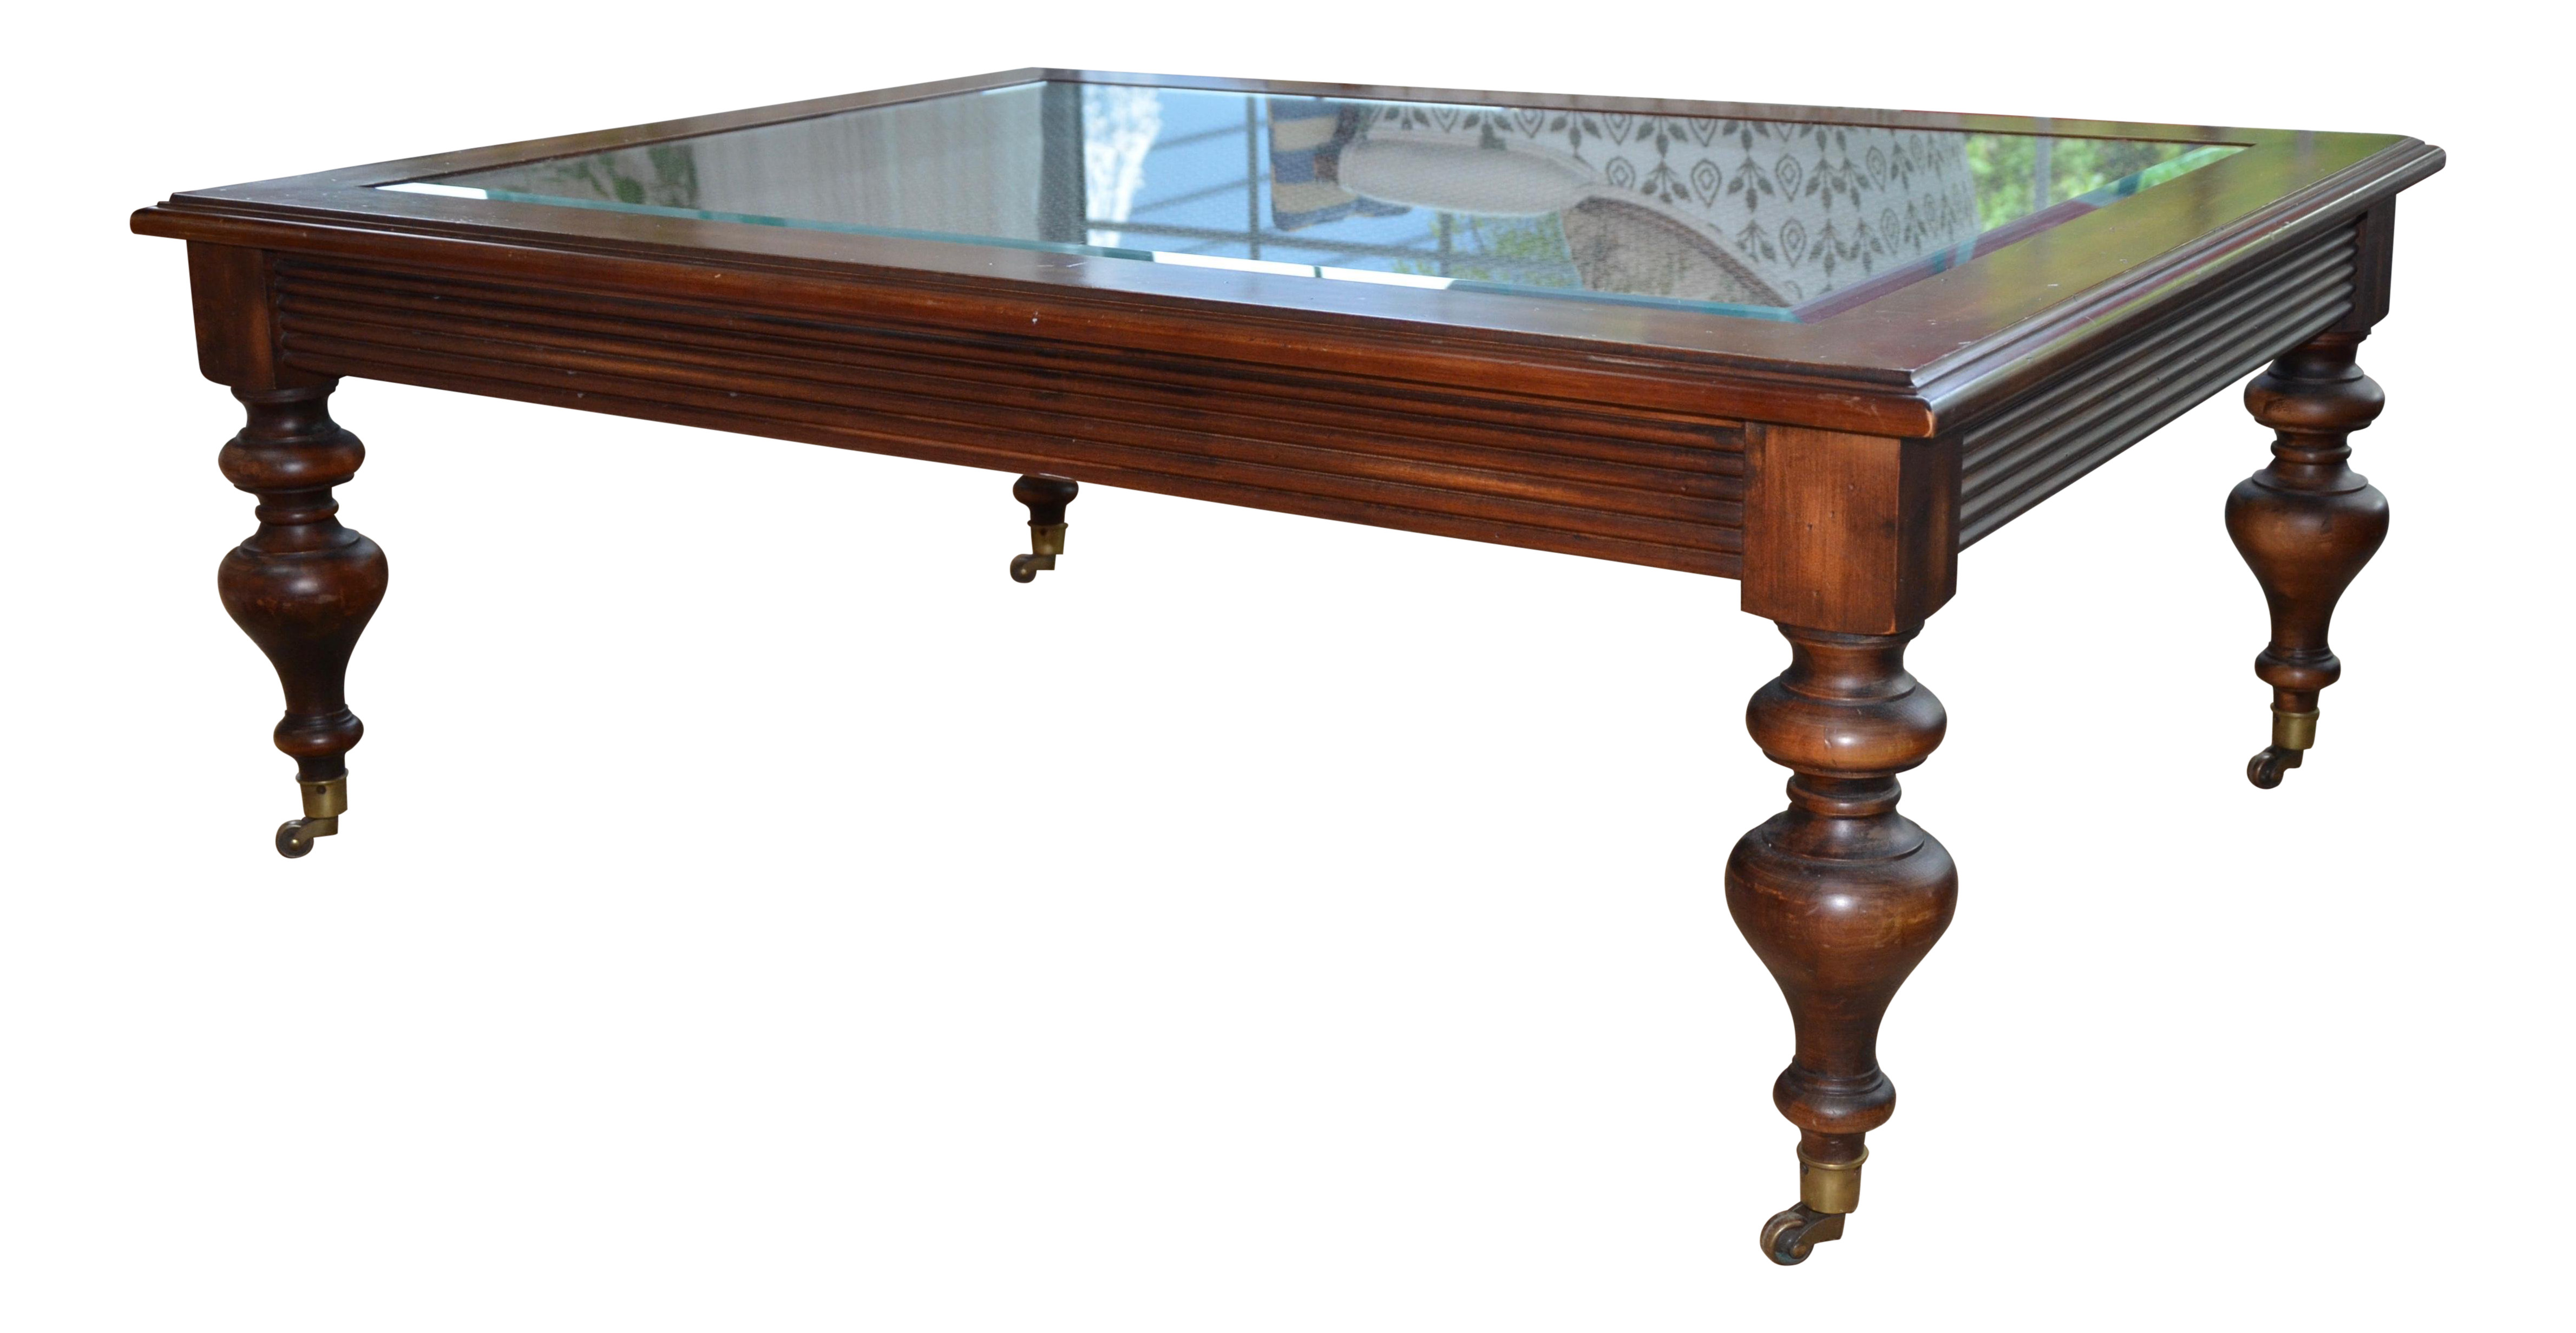 Ethan Allen Caned Coffee Table With Glass Top Brass Casters Glass Top Coffee Table Brass Casters Coffee Table [ 2462 x 4759 Pixel ]